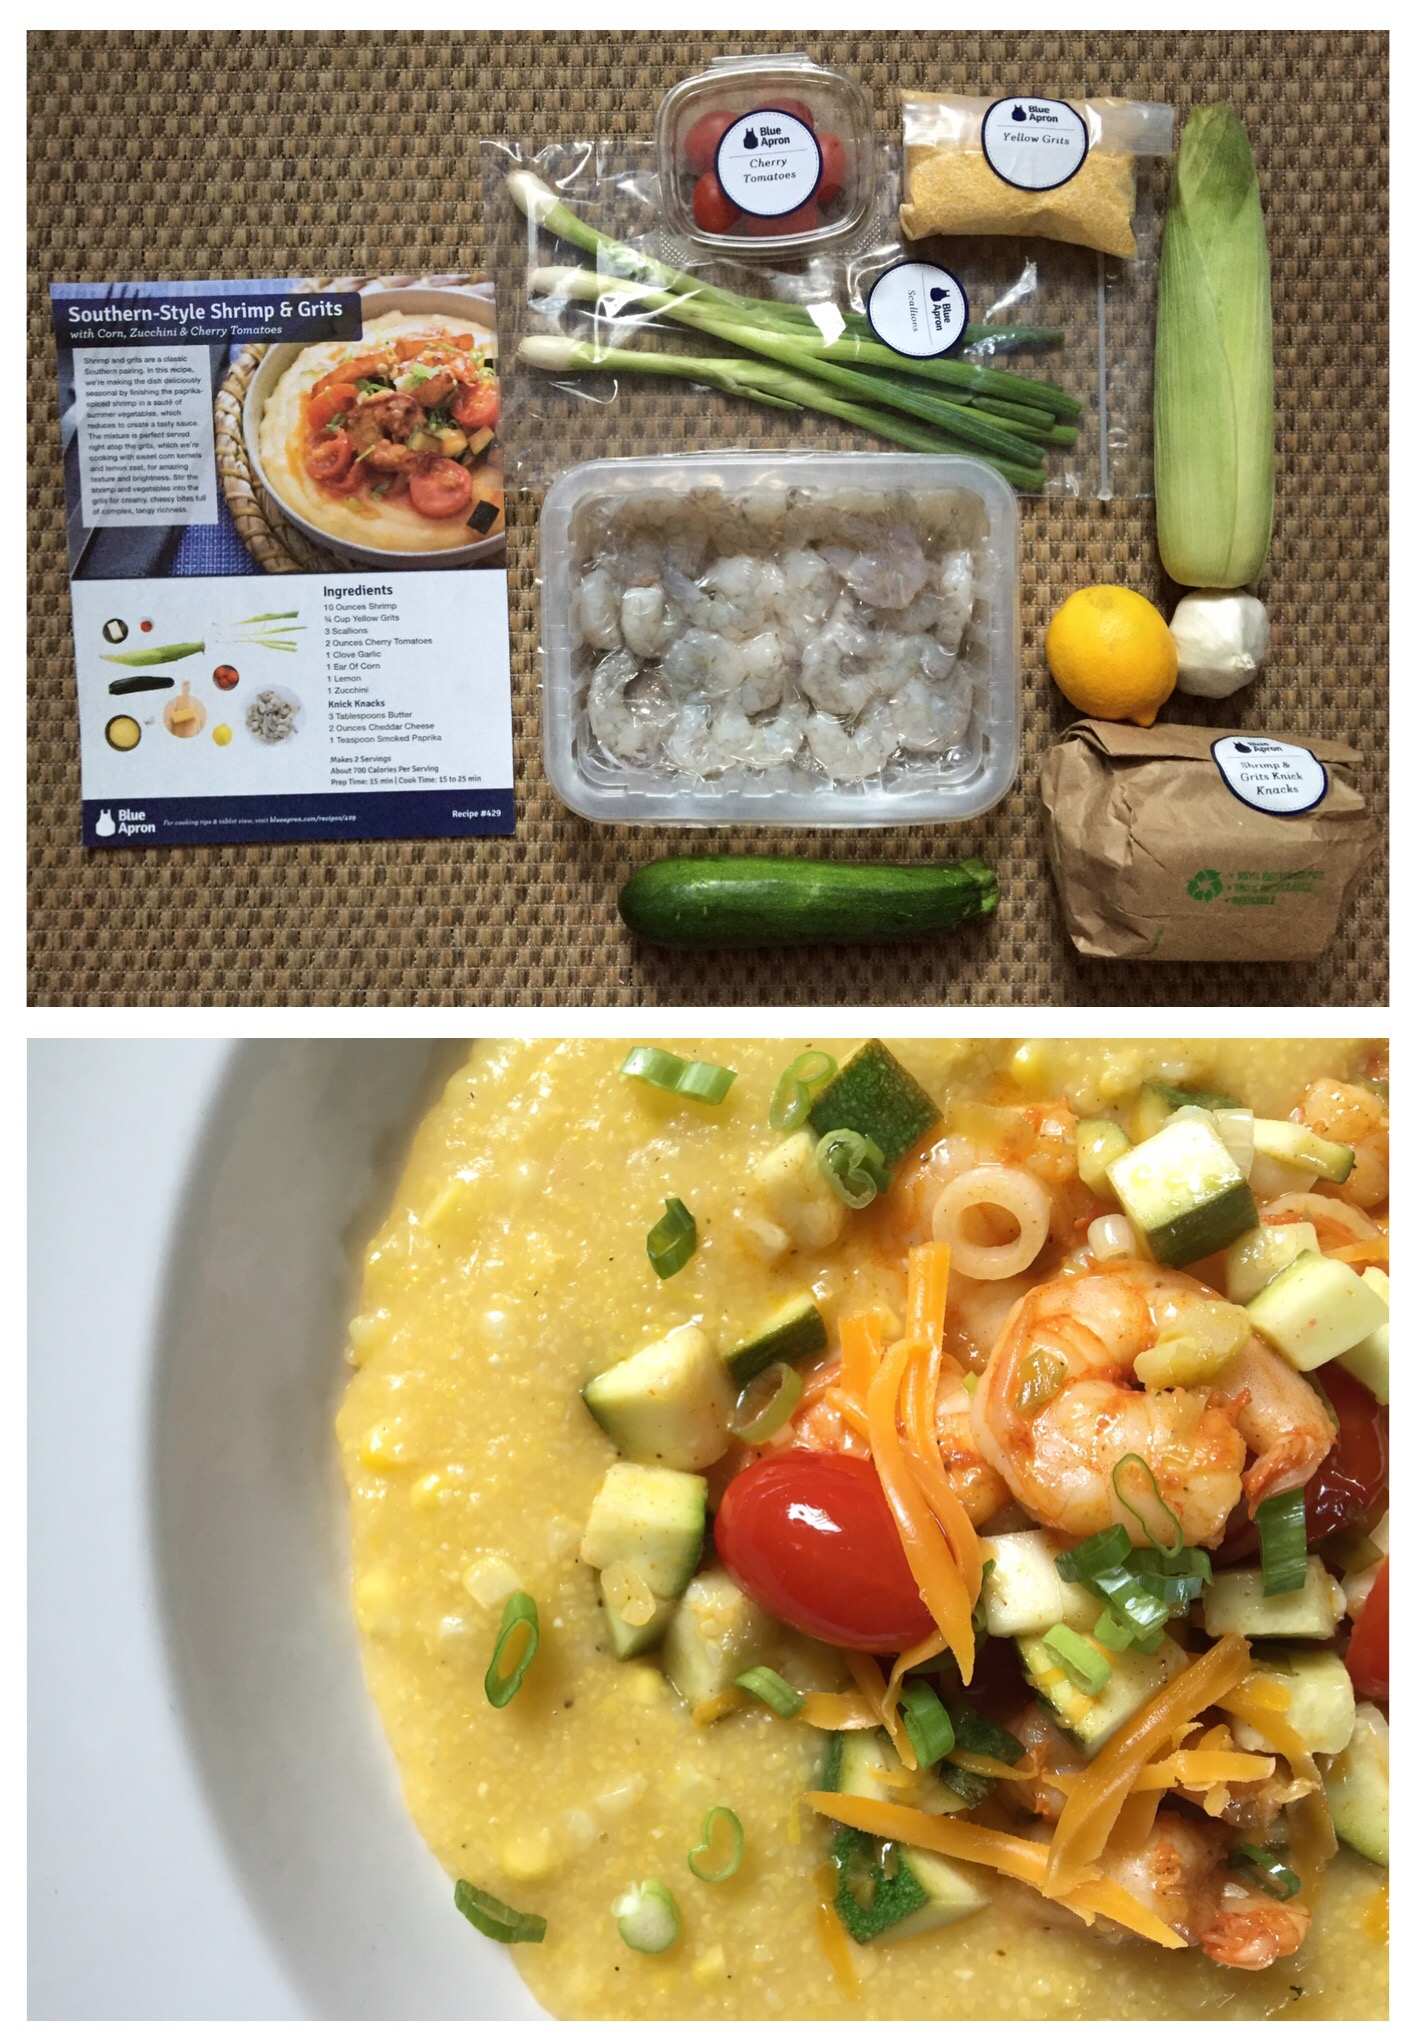 Blue apron yellow grits - Branching Owl S Blue Apron Southern Shrimps And Grits